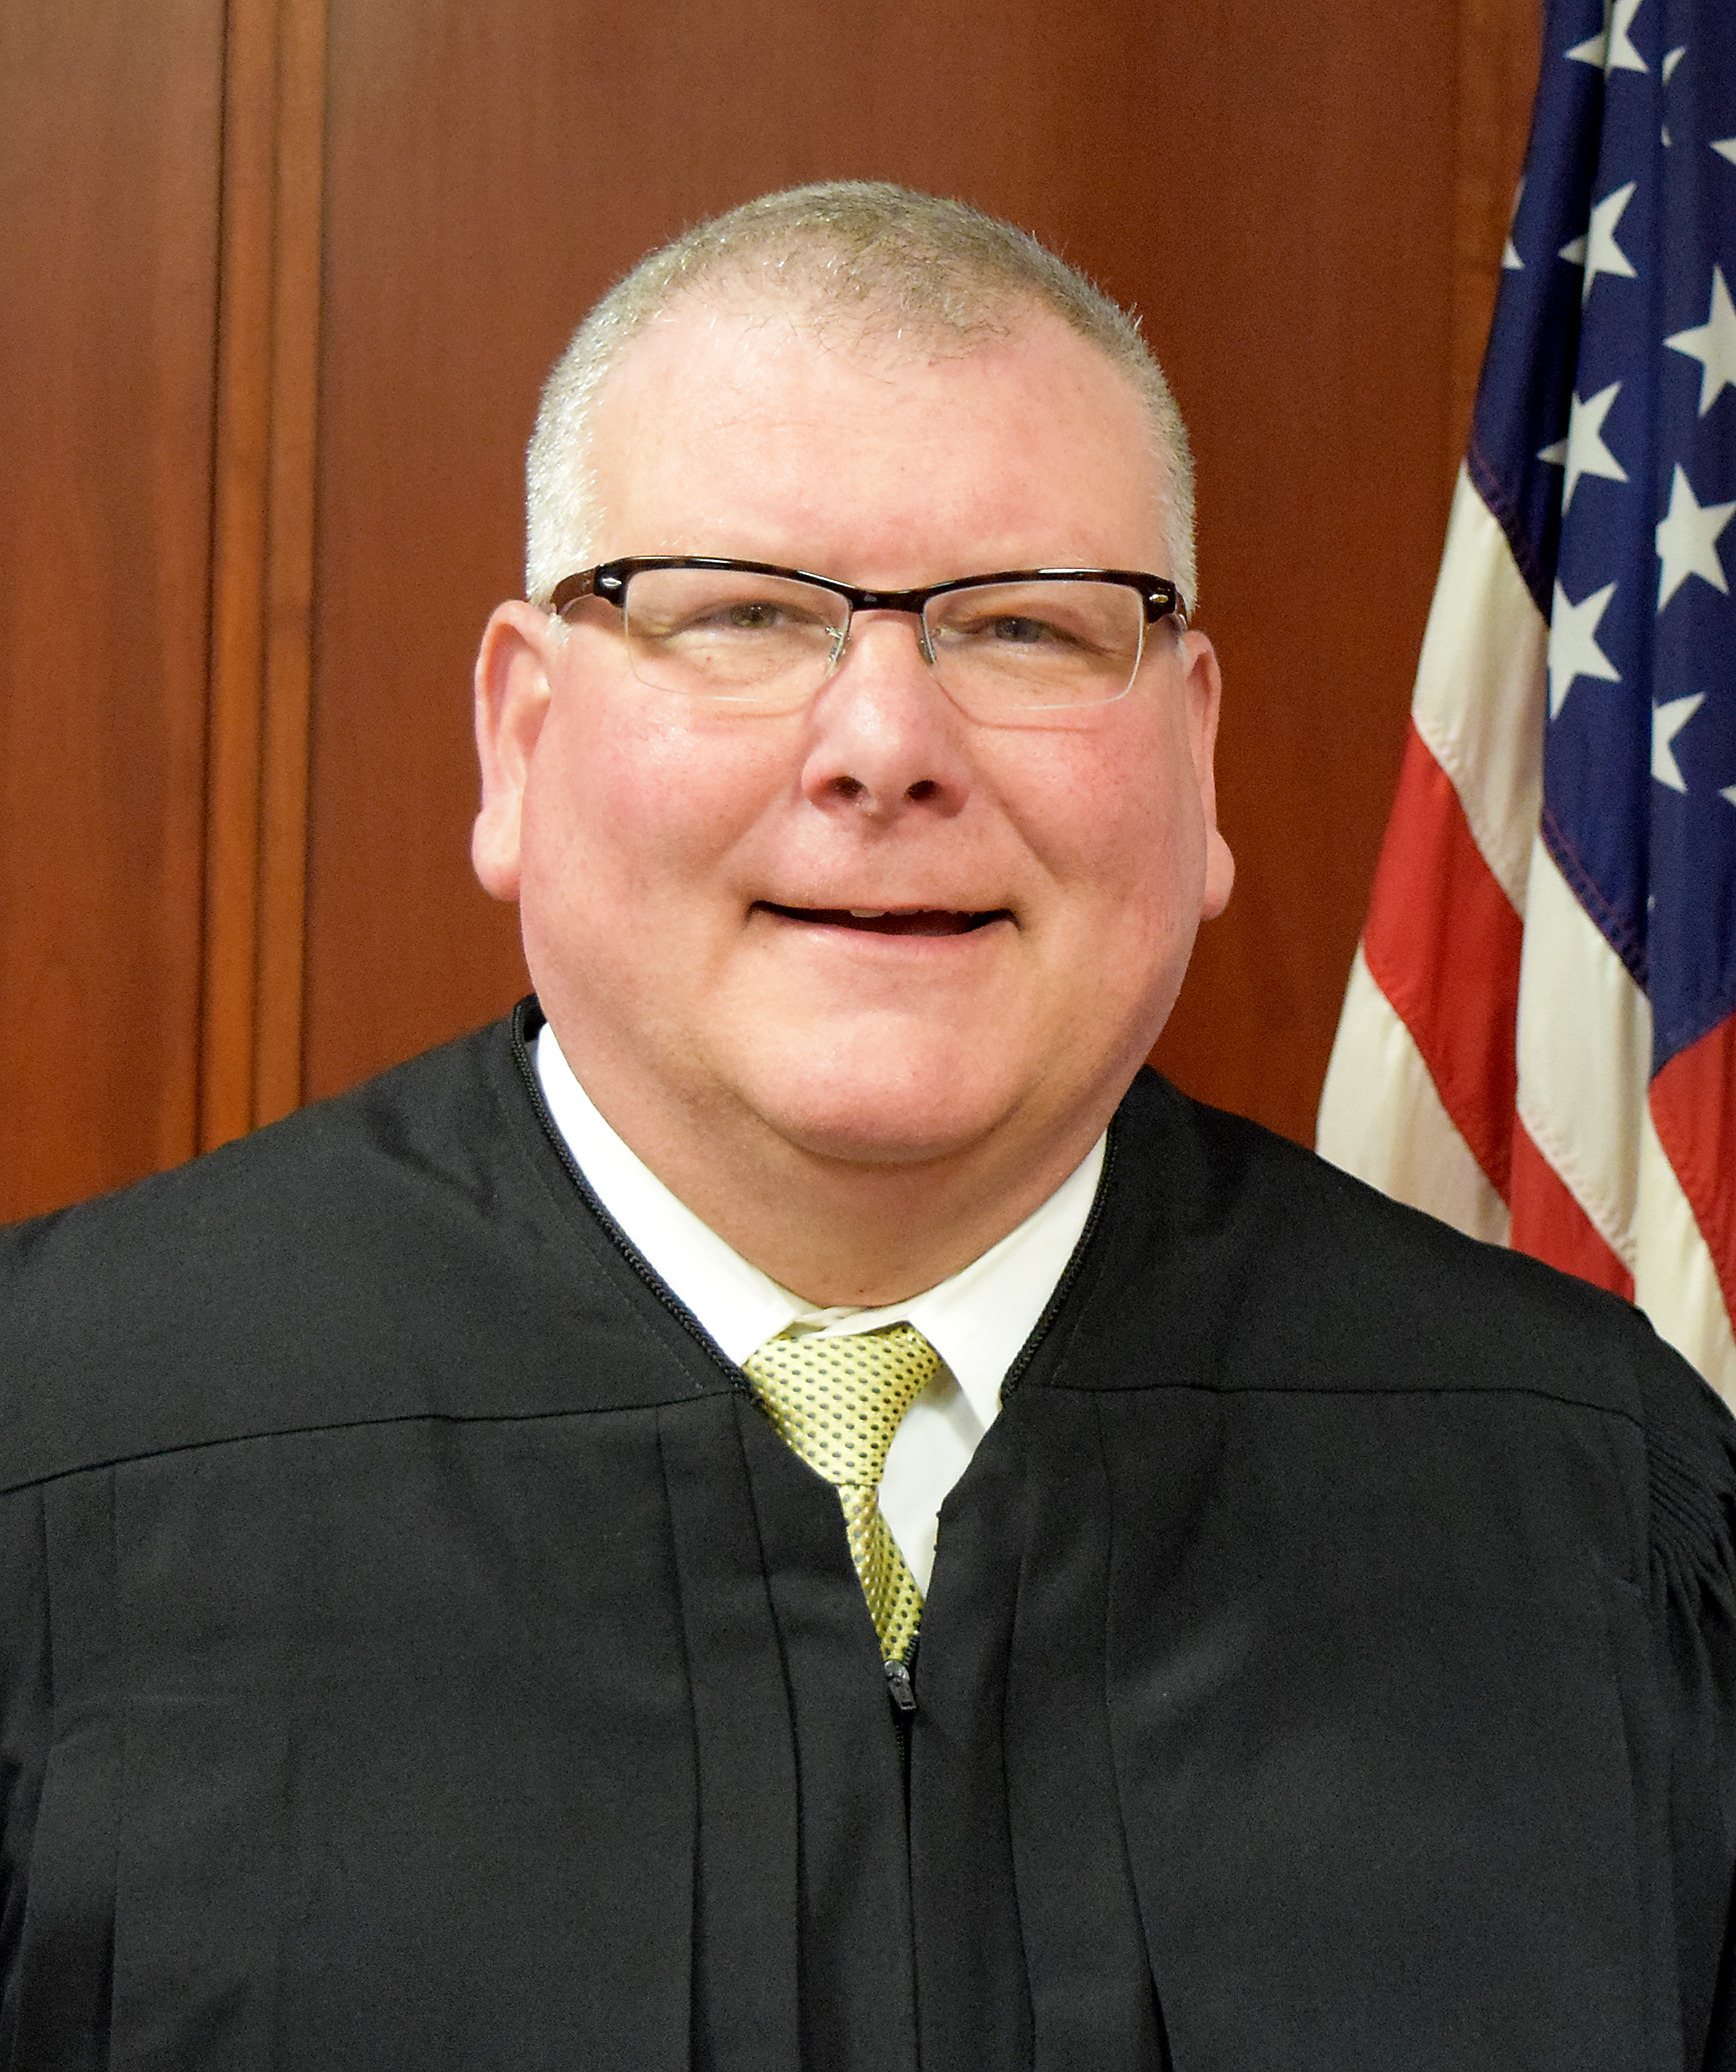 Judge Cook